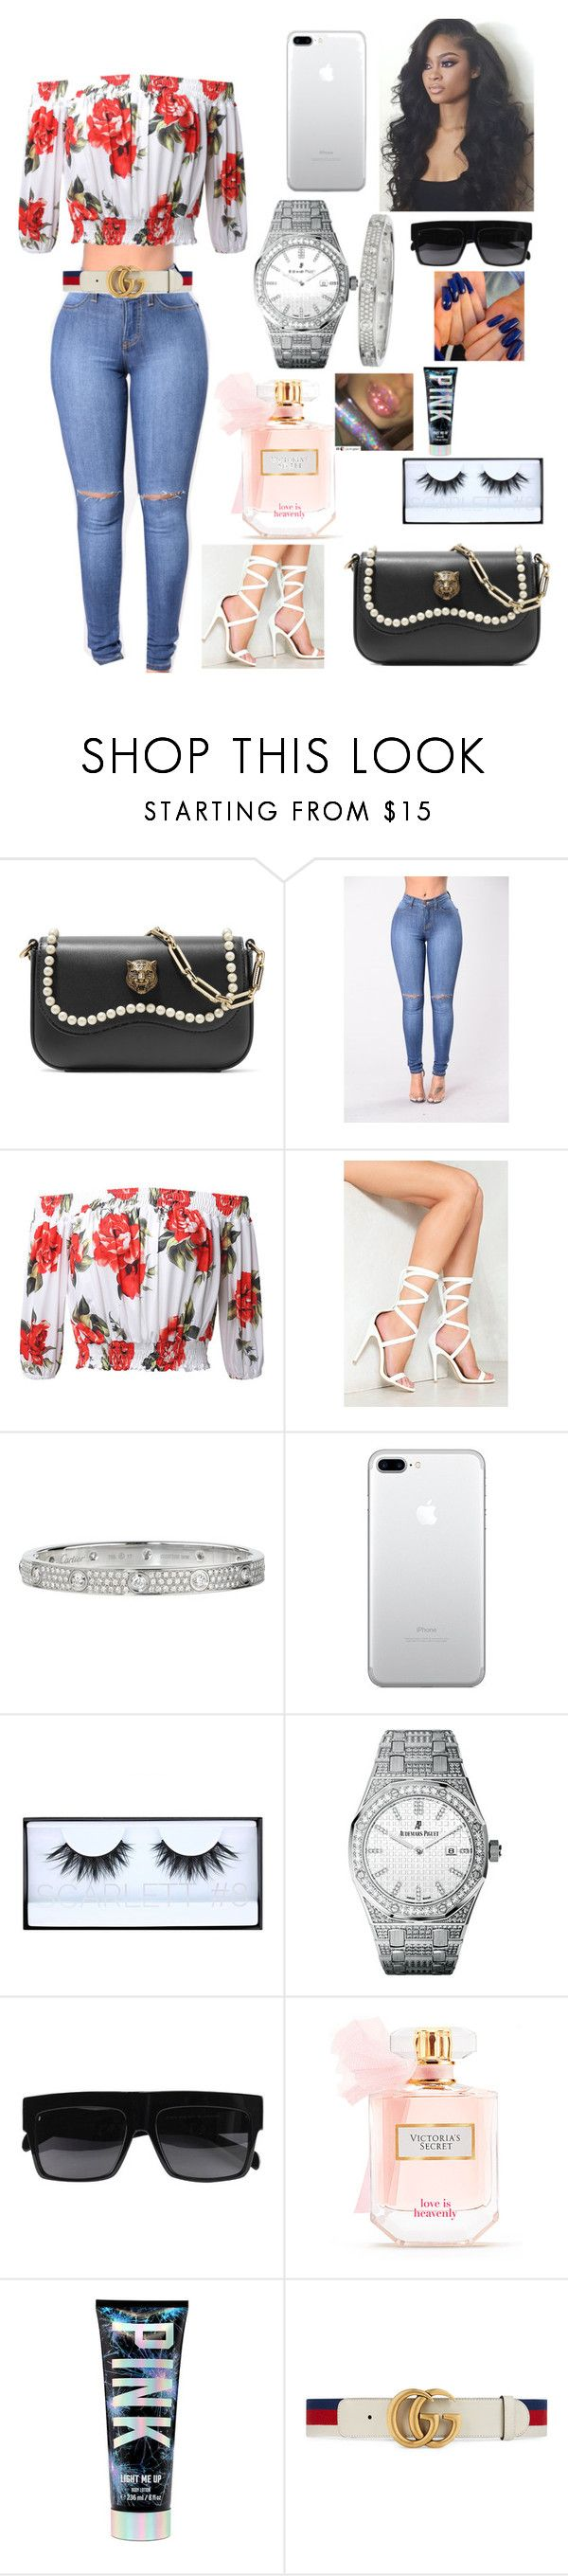 """Shopping Time!!!"" by auntiefaye ❤ liked on Polyvore featuring Gucci, Nasty Gal, Cartier, Huda Beauty, Audemars Piguet and Victoria's Secret"